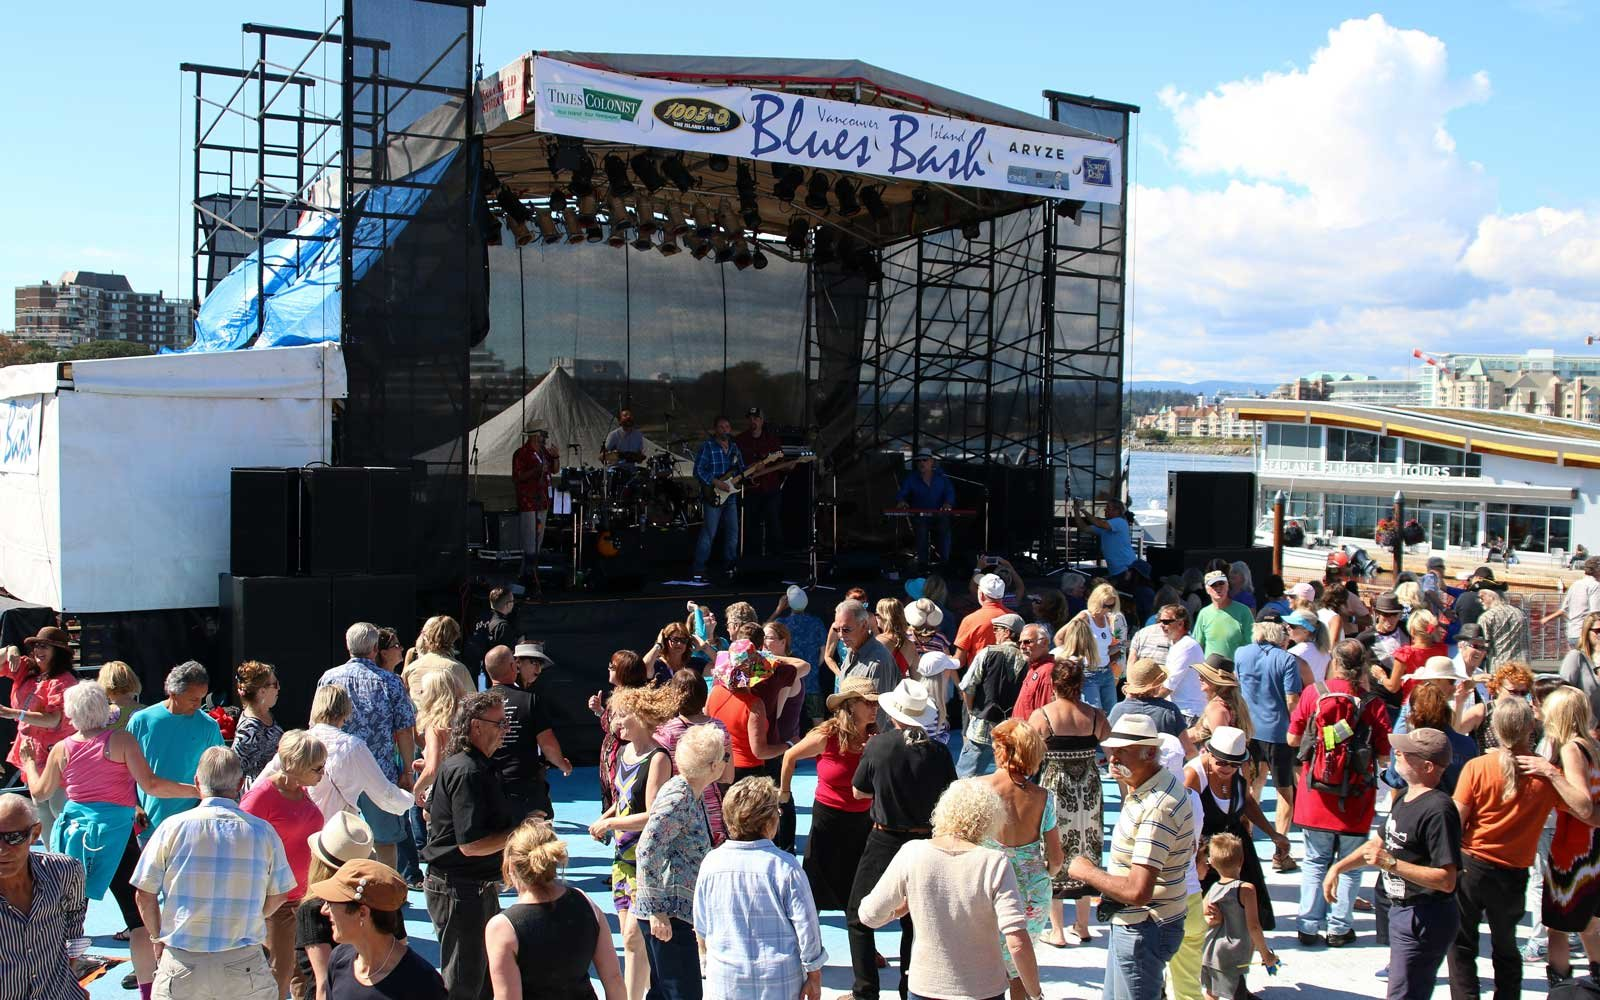 Vancouver Island Blues Bash, Vancouver Island - September 2-4